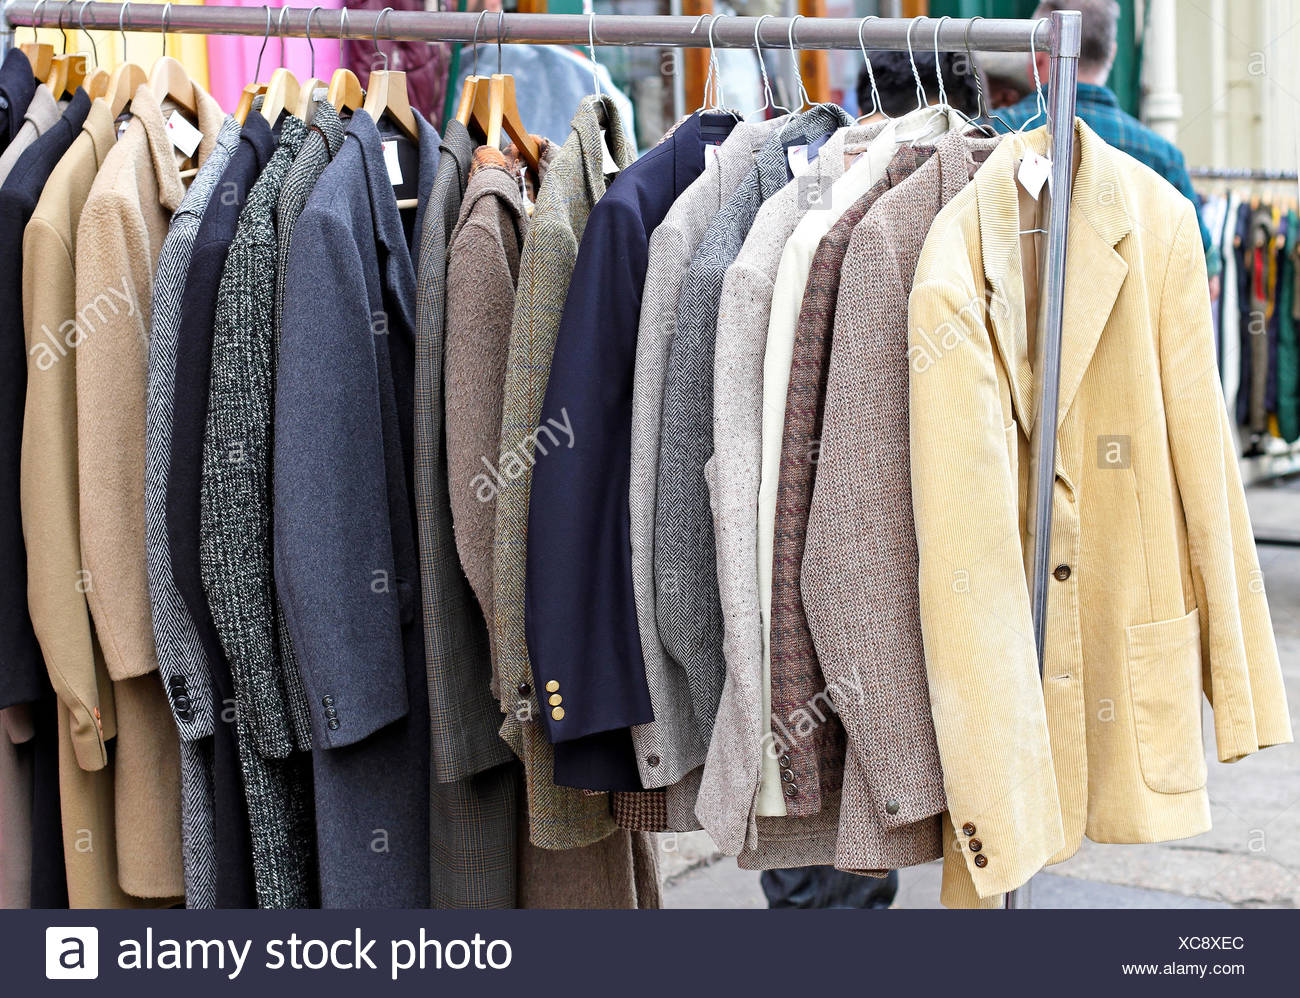 Suits at rail - Stock Image